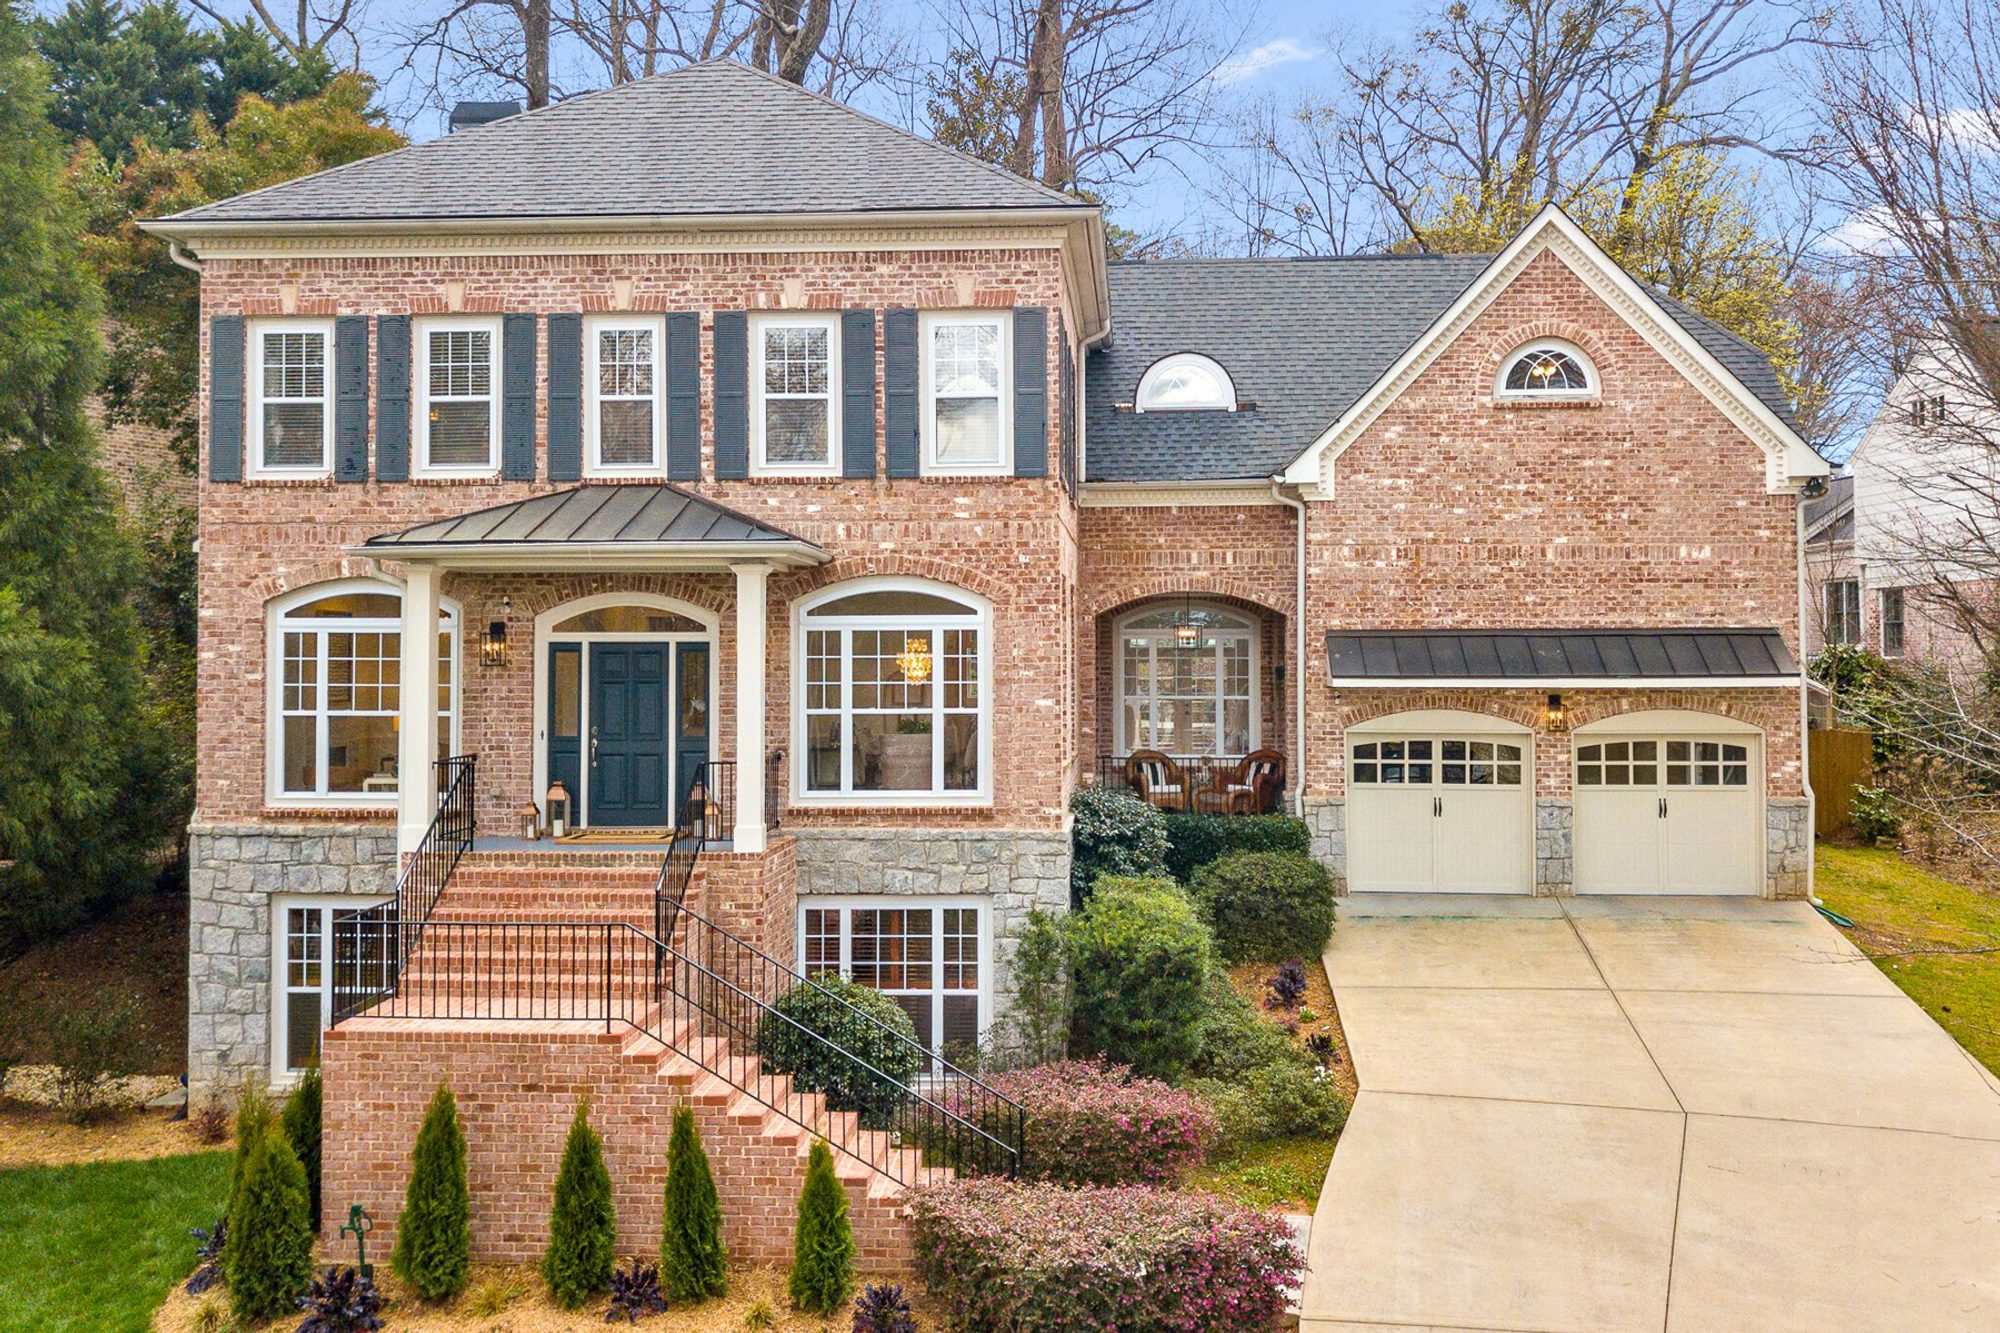 red brick home with a stone foundation, metal accent roofing and black shutters.